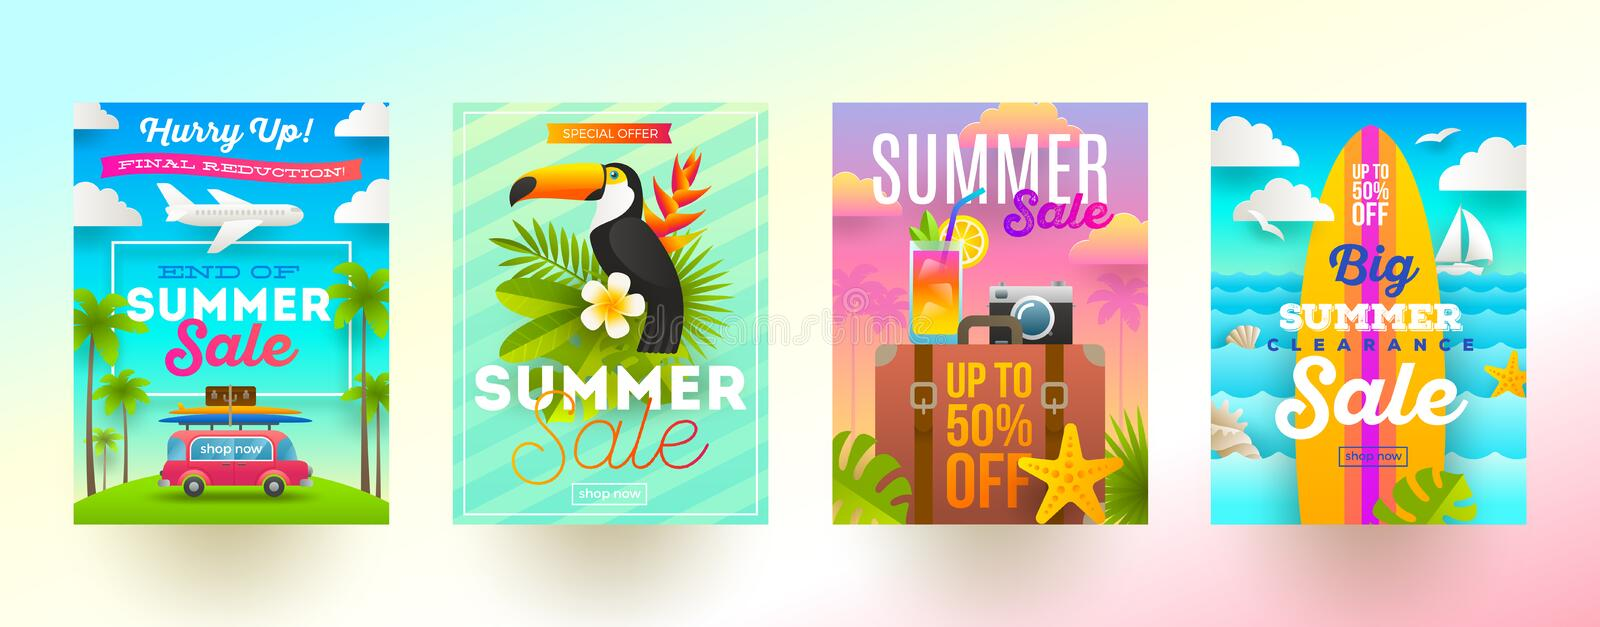 Set of summer sale promotion banners. Vacation, holidays and travel colorful bright background. Poster or newsletter design. Vector illustration stock illustration